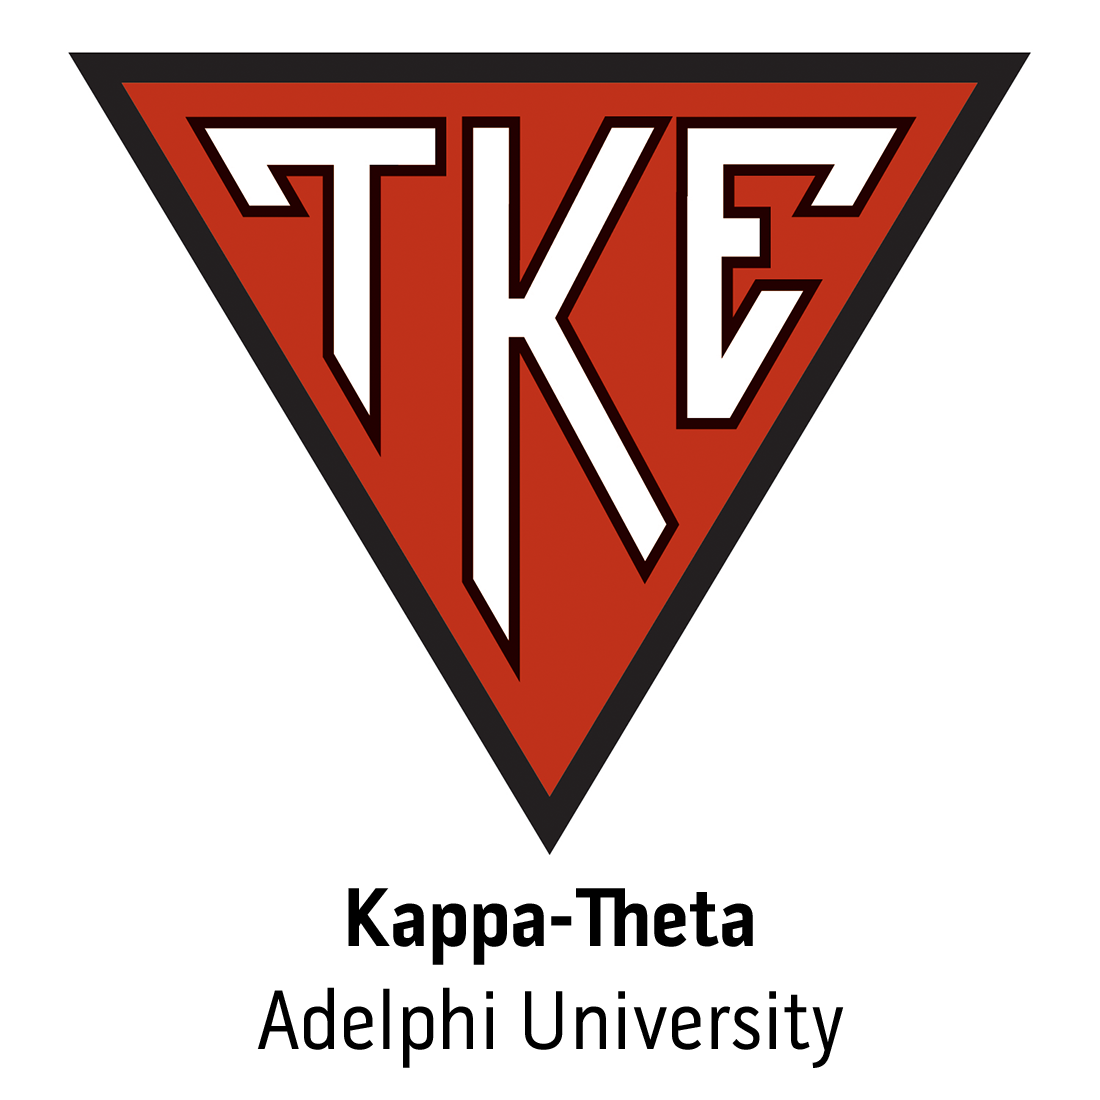 Kappa-Theta Chapter at Adelphi University